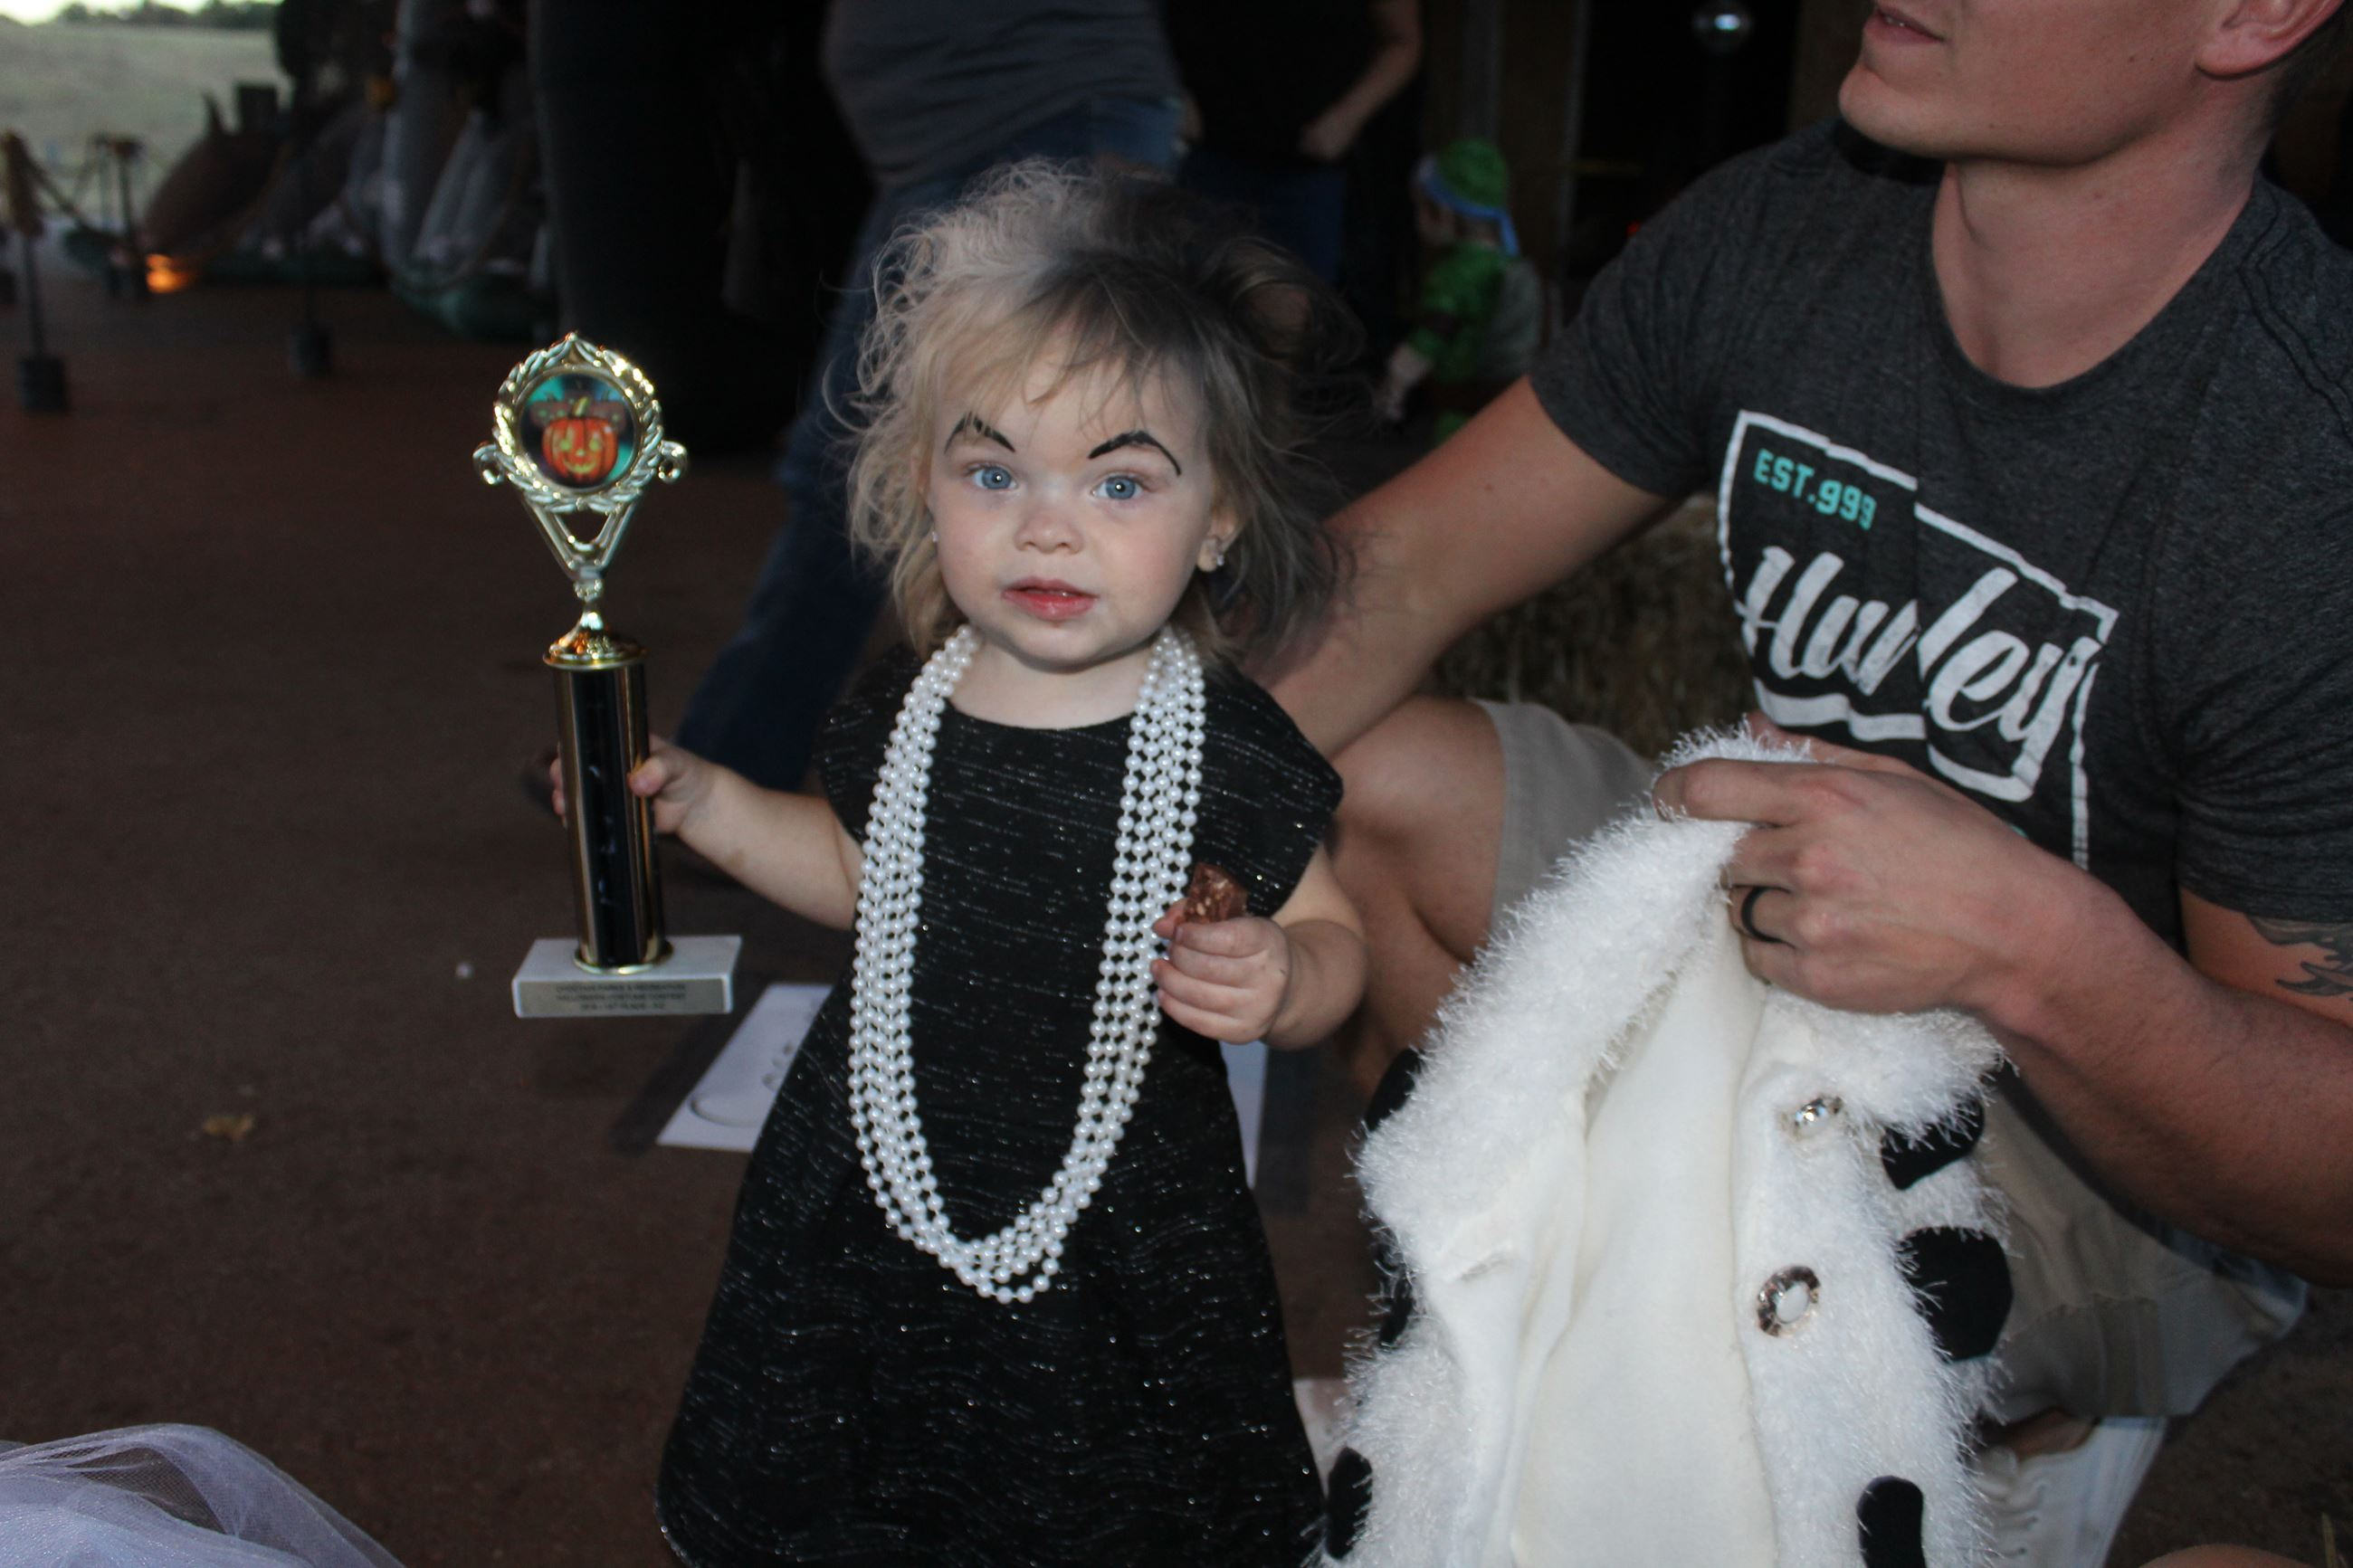 A young girl in costume holding trophy